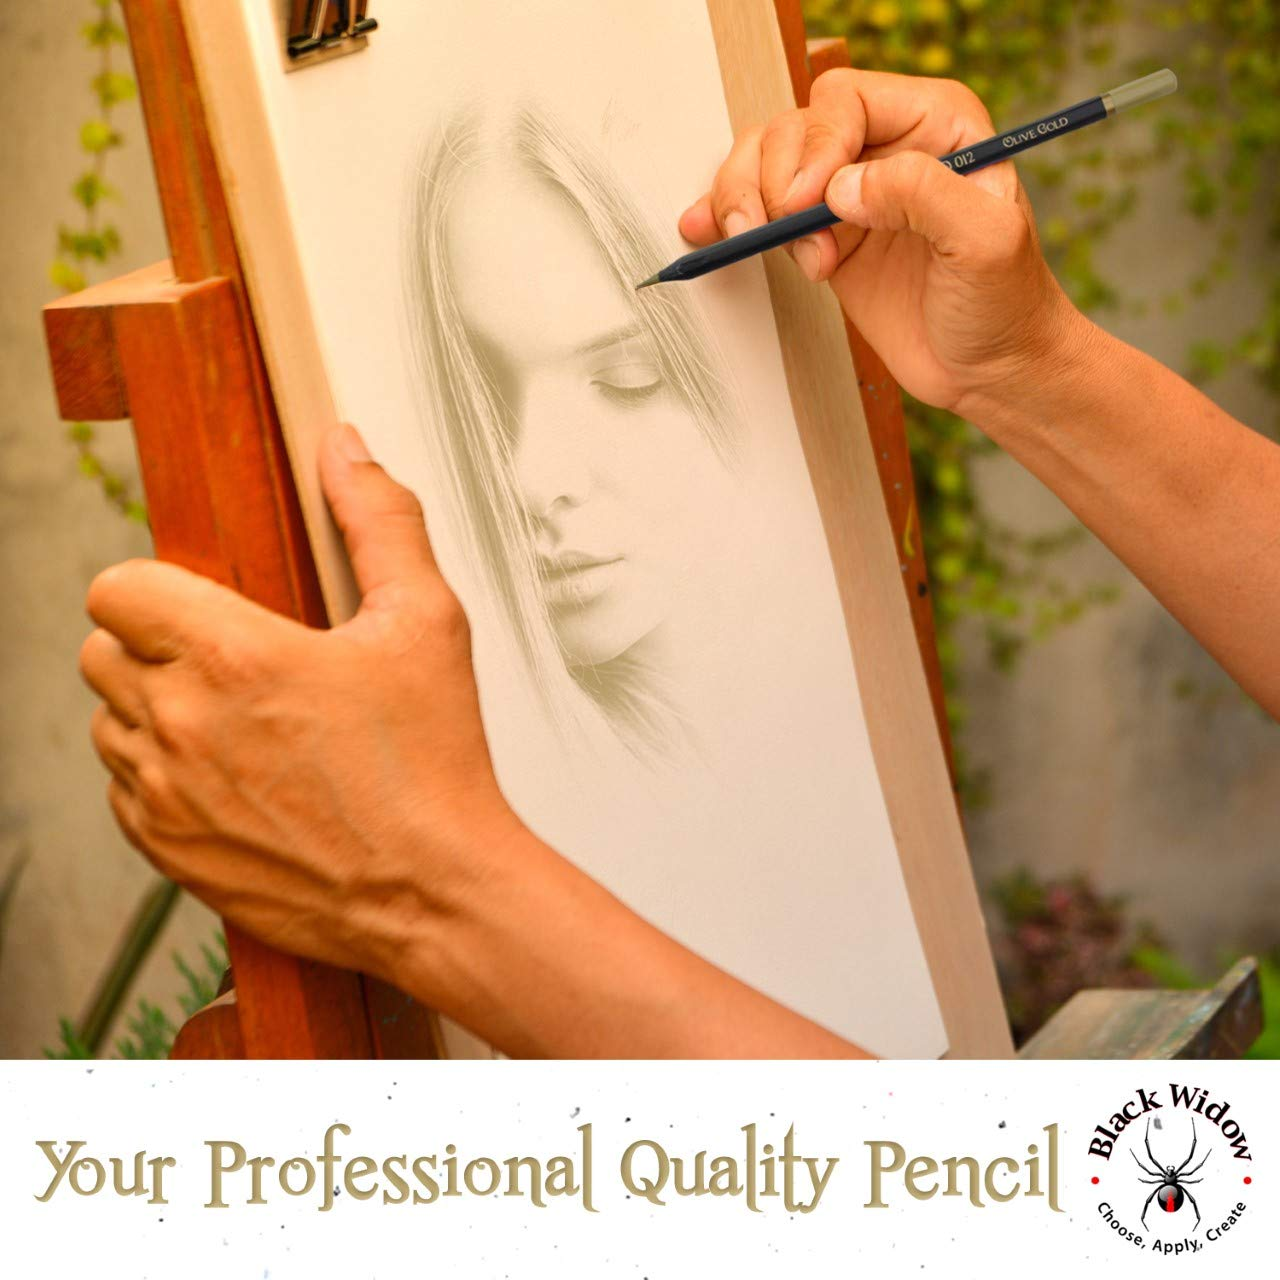 Dark Skin Tone Color Pencils for Portrait Set - Colored Pencils for Adults and Skintone Artist Pencils by Medihealth 1 (Image #3)